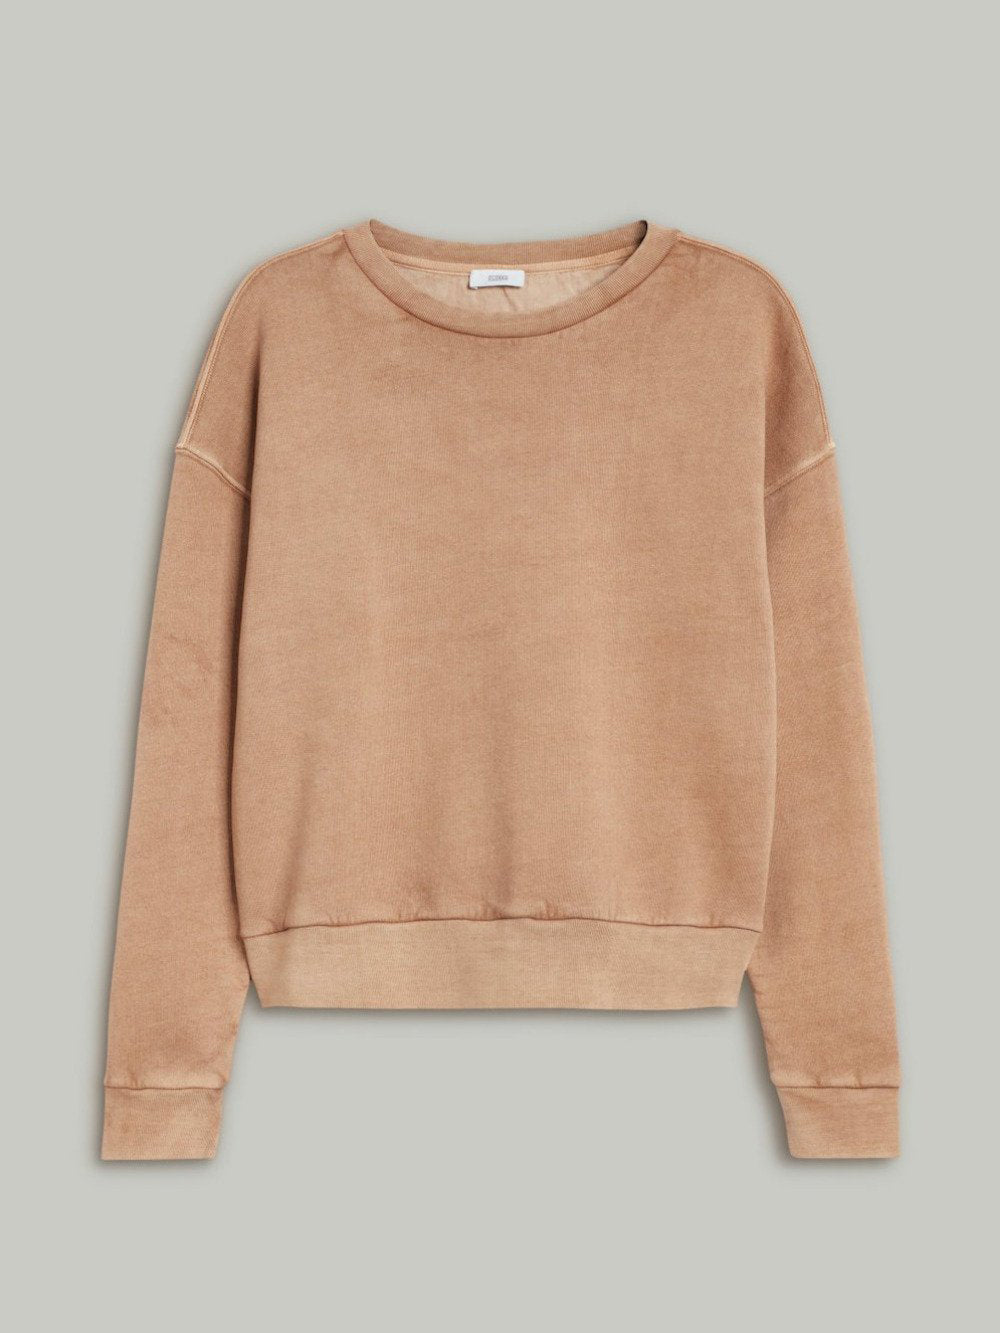 closed sweatshirt in golden oak